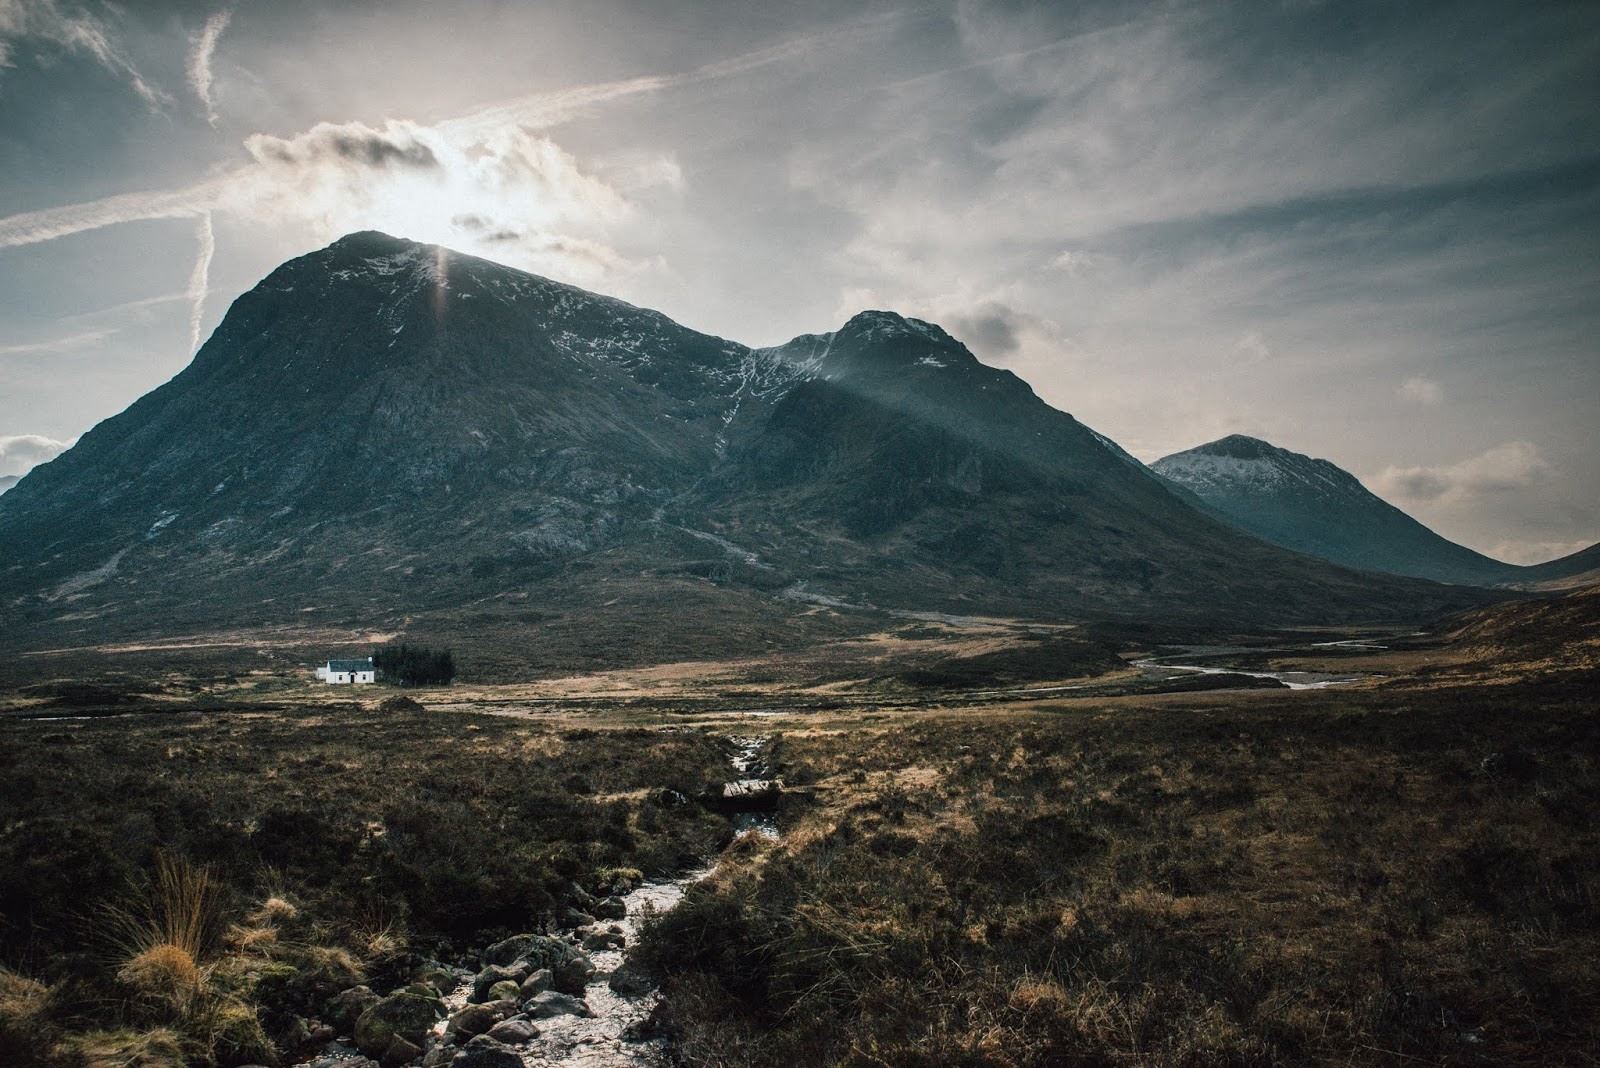 glen coe white house photo stitching liquid grain liquidgrain scotland